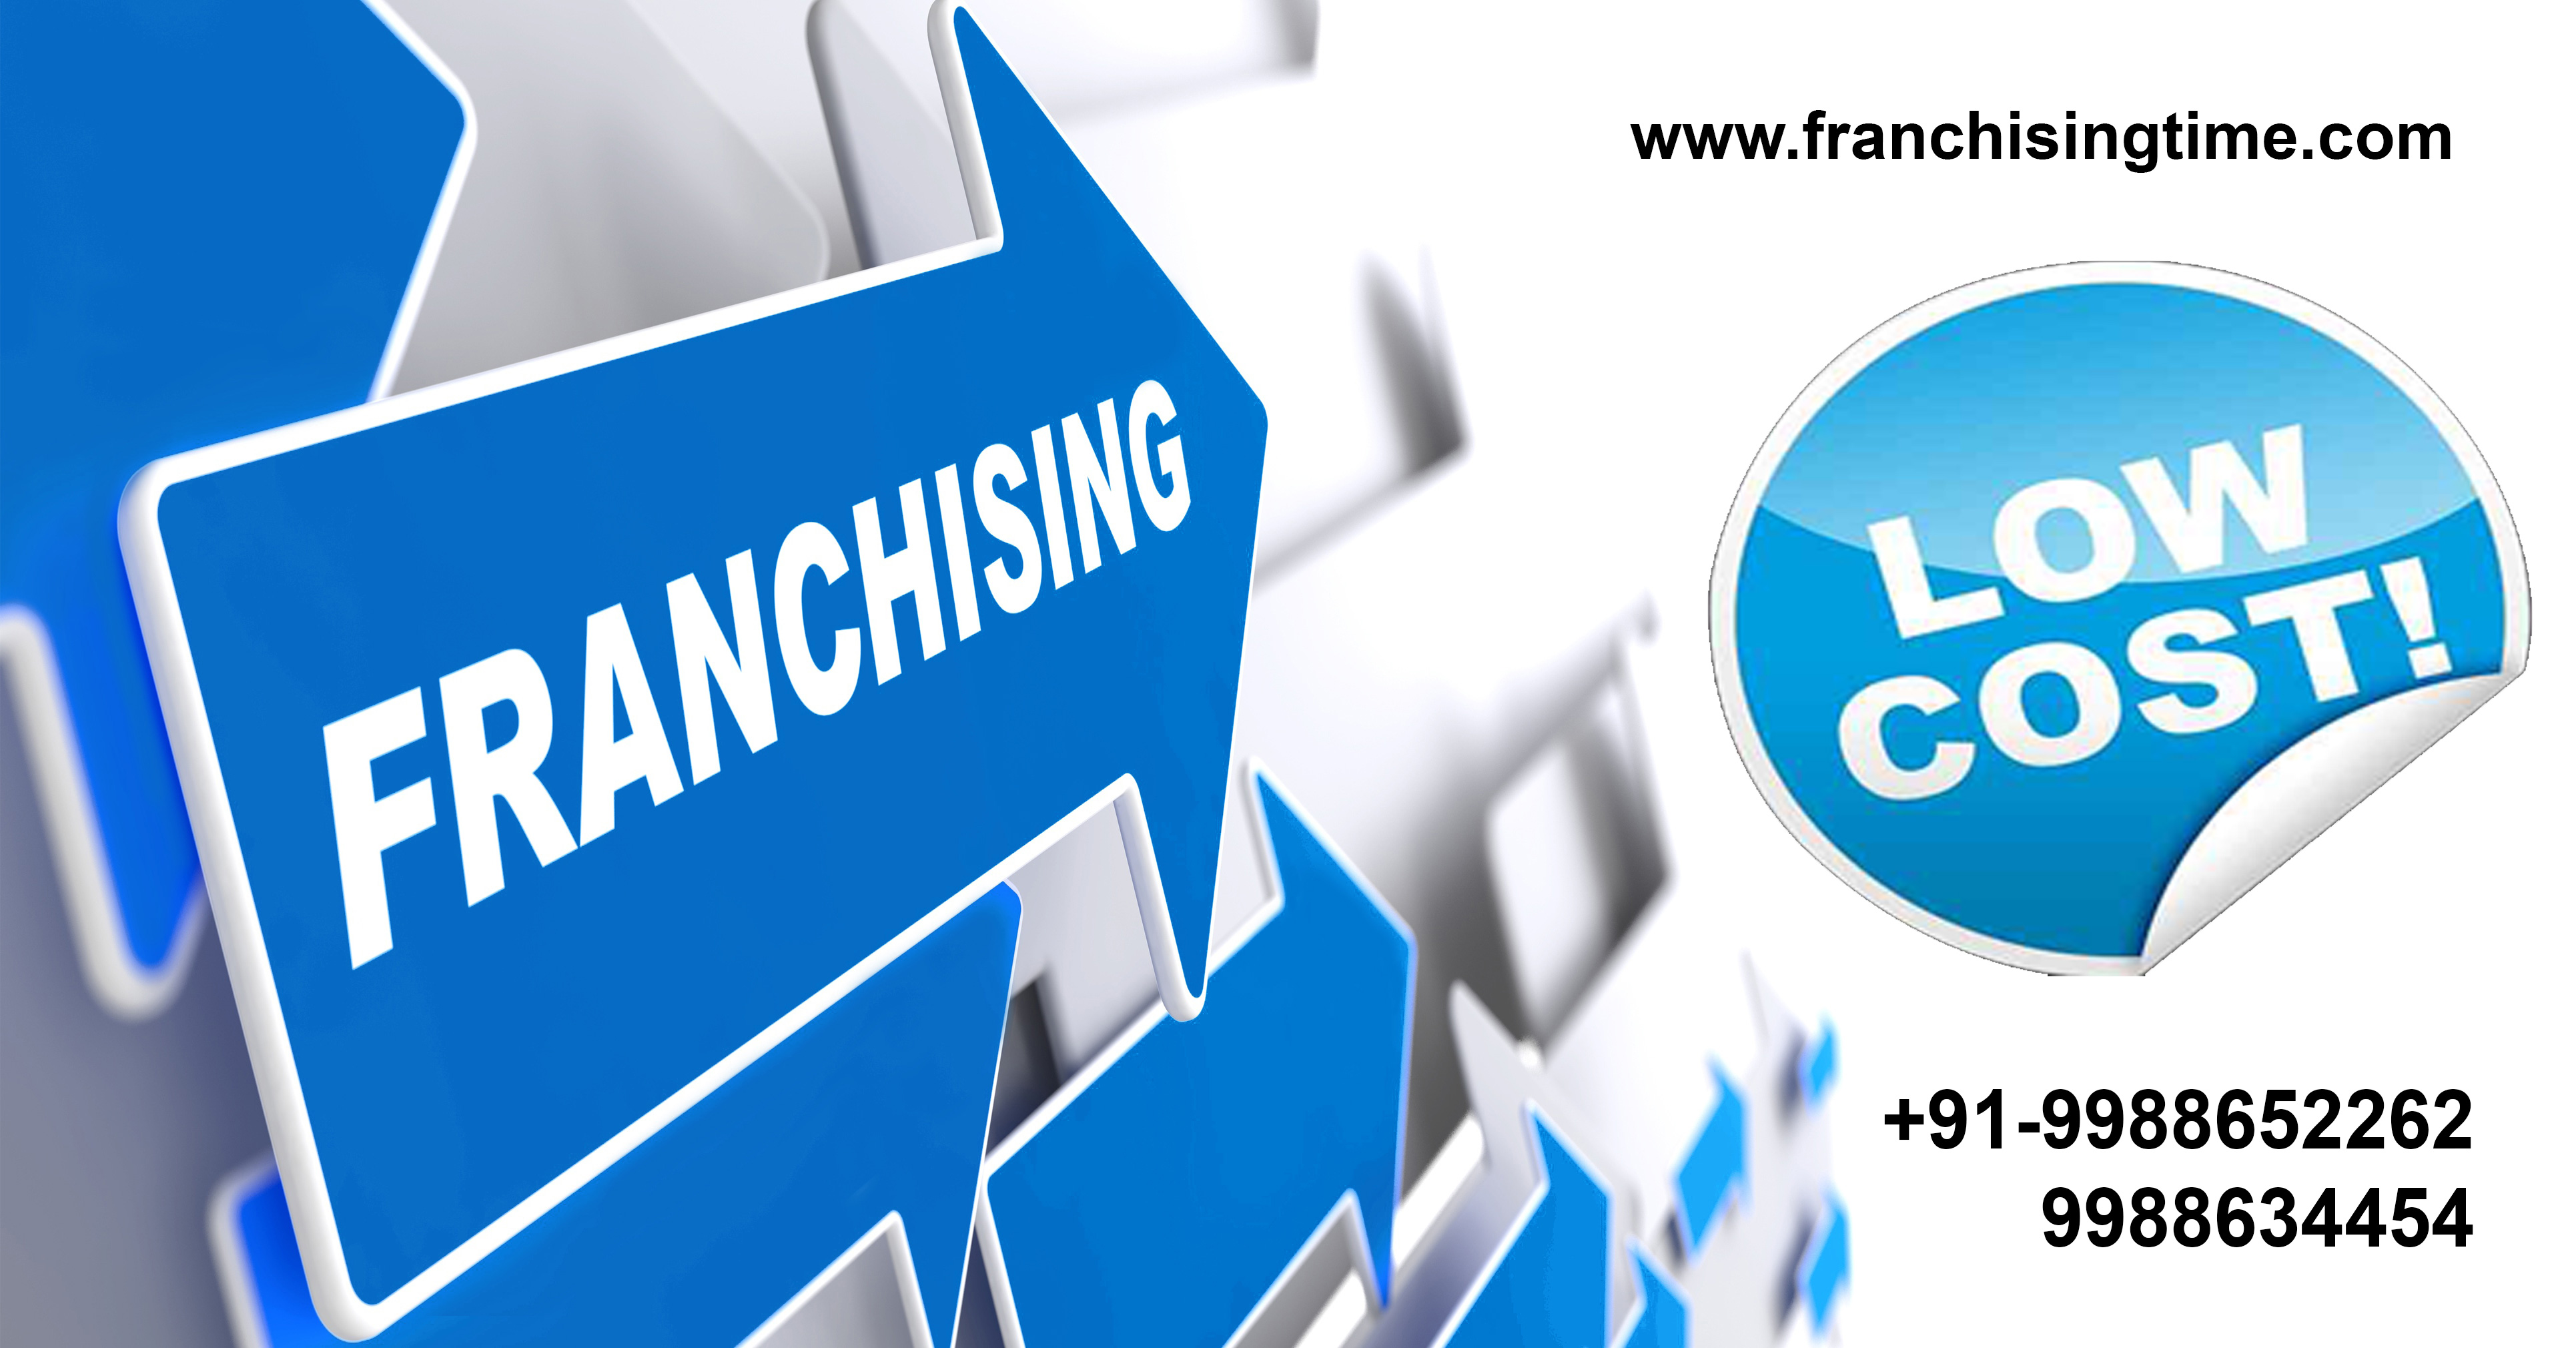 Best Low Cost Franchise Business Opportunities India 2018